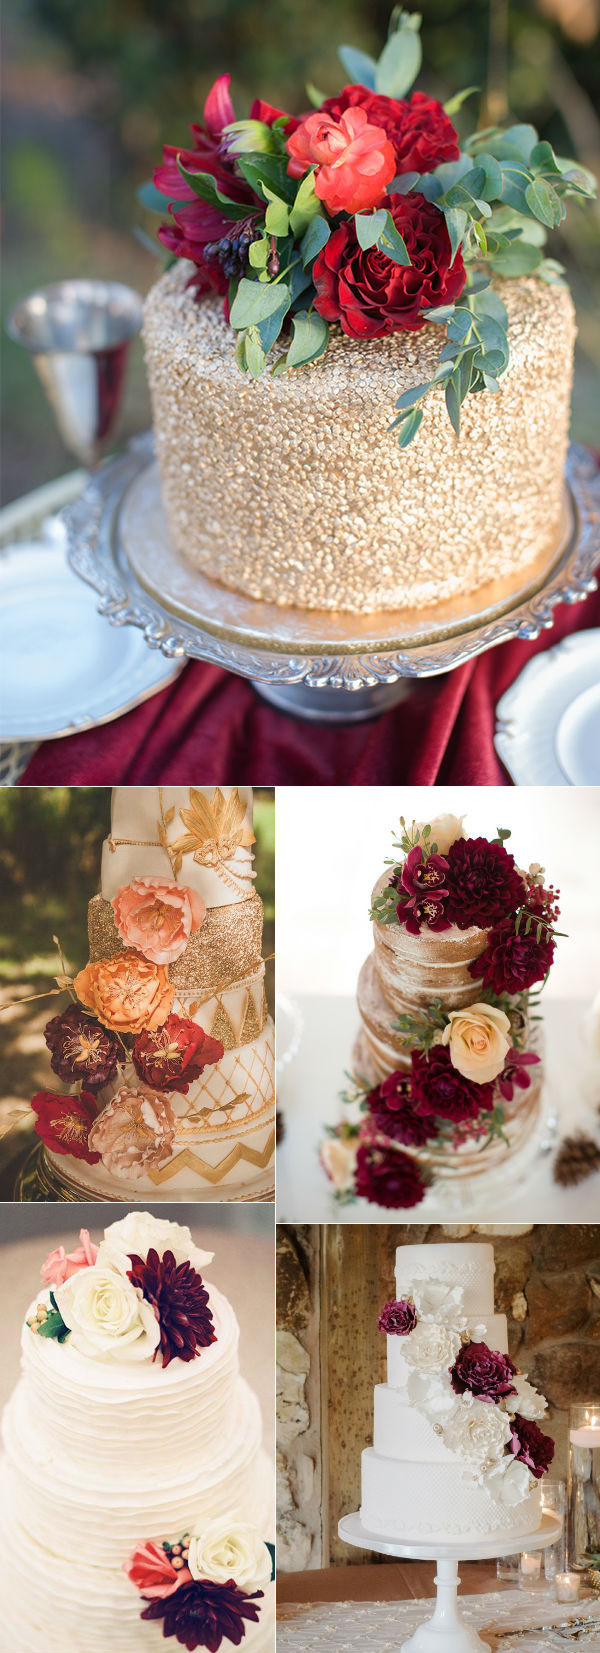 Small Fall Wedding Cakes  32 Amazing Wedding Cakes Perfect For Fall